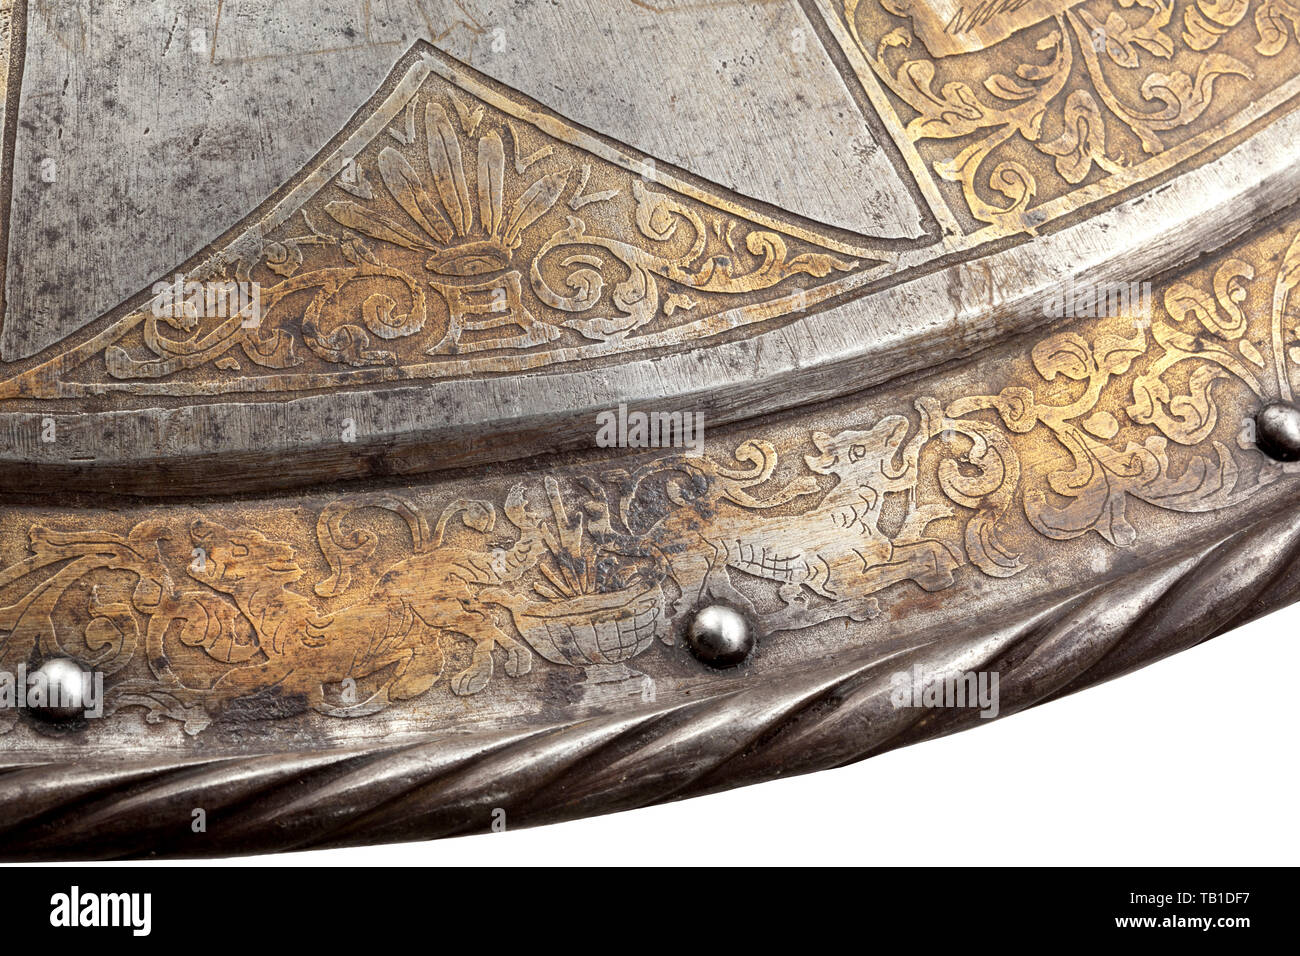 An etched and gilt iron parade shield inspired by the French or Flemish late 16th century style, 19th century, Convex, with recessed border and boldly turned and roped edge, fitted with central spike, studded with lining rivets and pairs of rivets for enarms (missing), decorated with radiating etched and gilt bands of foliage also enclosing a series of classical allegorical figures, and with an etched circular border frieze of scrollwork inhabited by fantastic birds and beasts from mythology. Diameter 61 cm. defensive arms, weapons, arms, weapon,, Additional-Rights-Clearance-Info-Not-Available - Stock Image